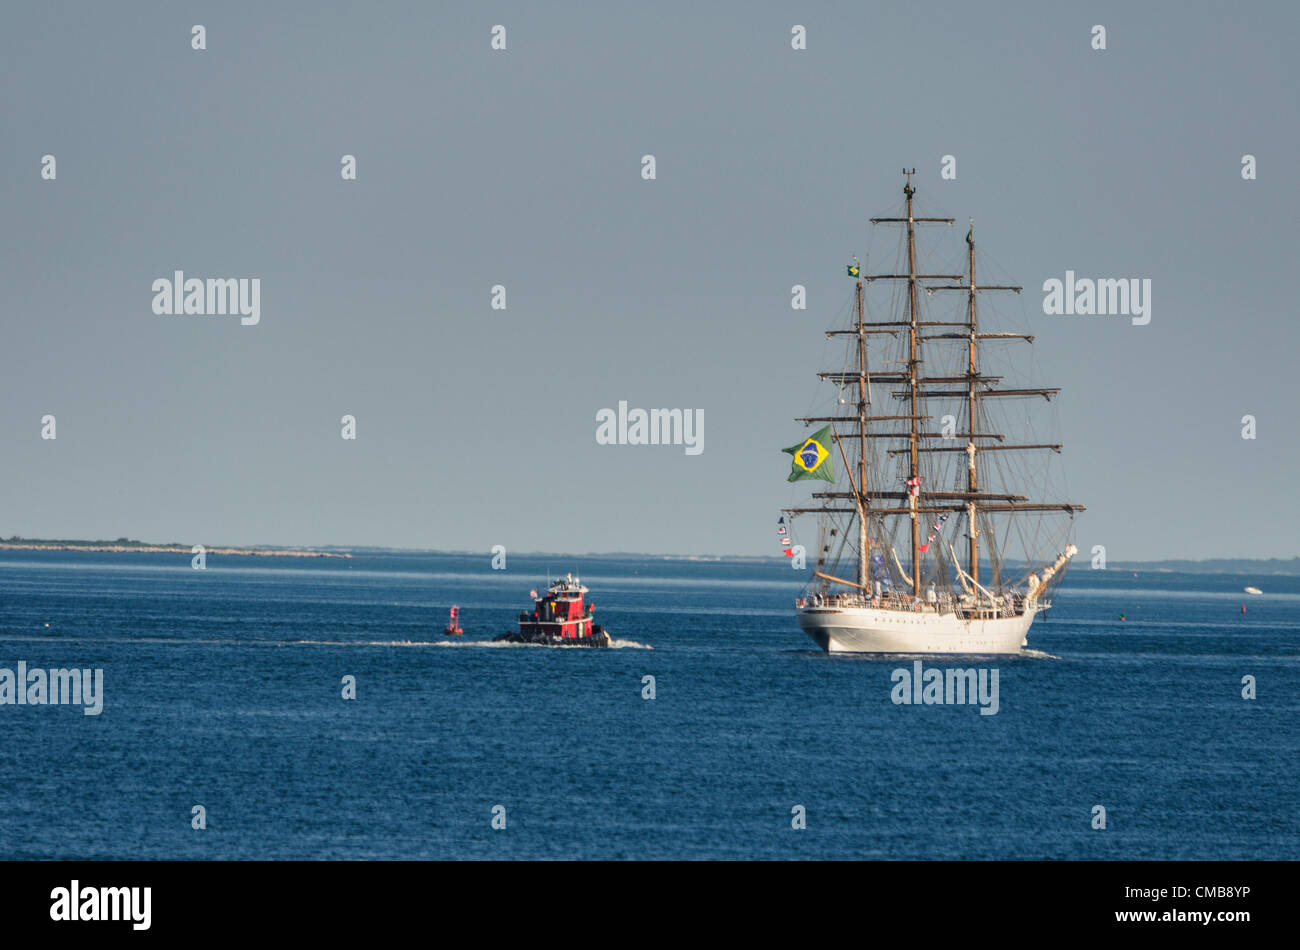 New London, Connecticut, USA - July 9, 2012: The Brazilian tall ship Cisne Branco with signal flags and the flag - Stock Image